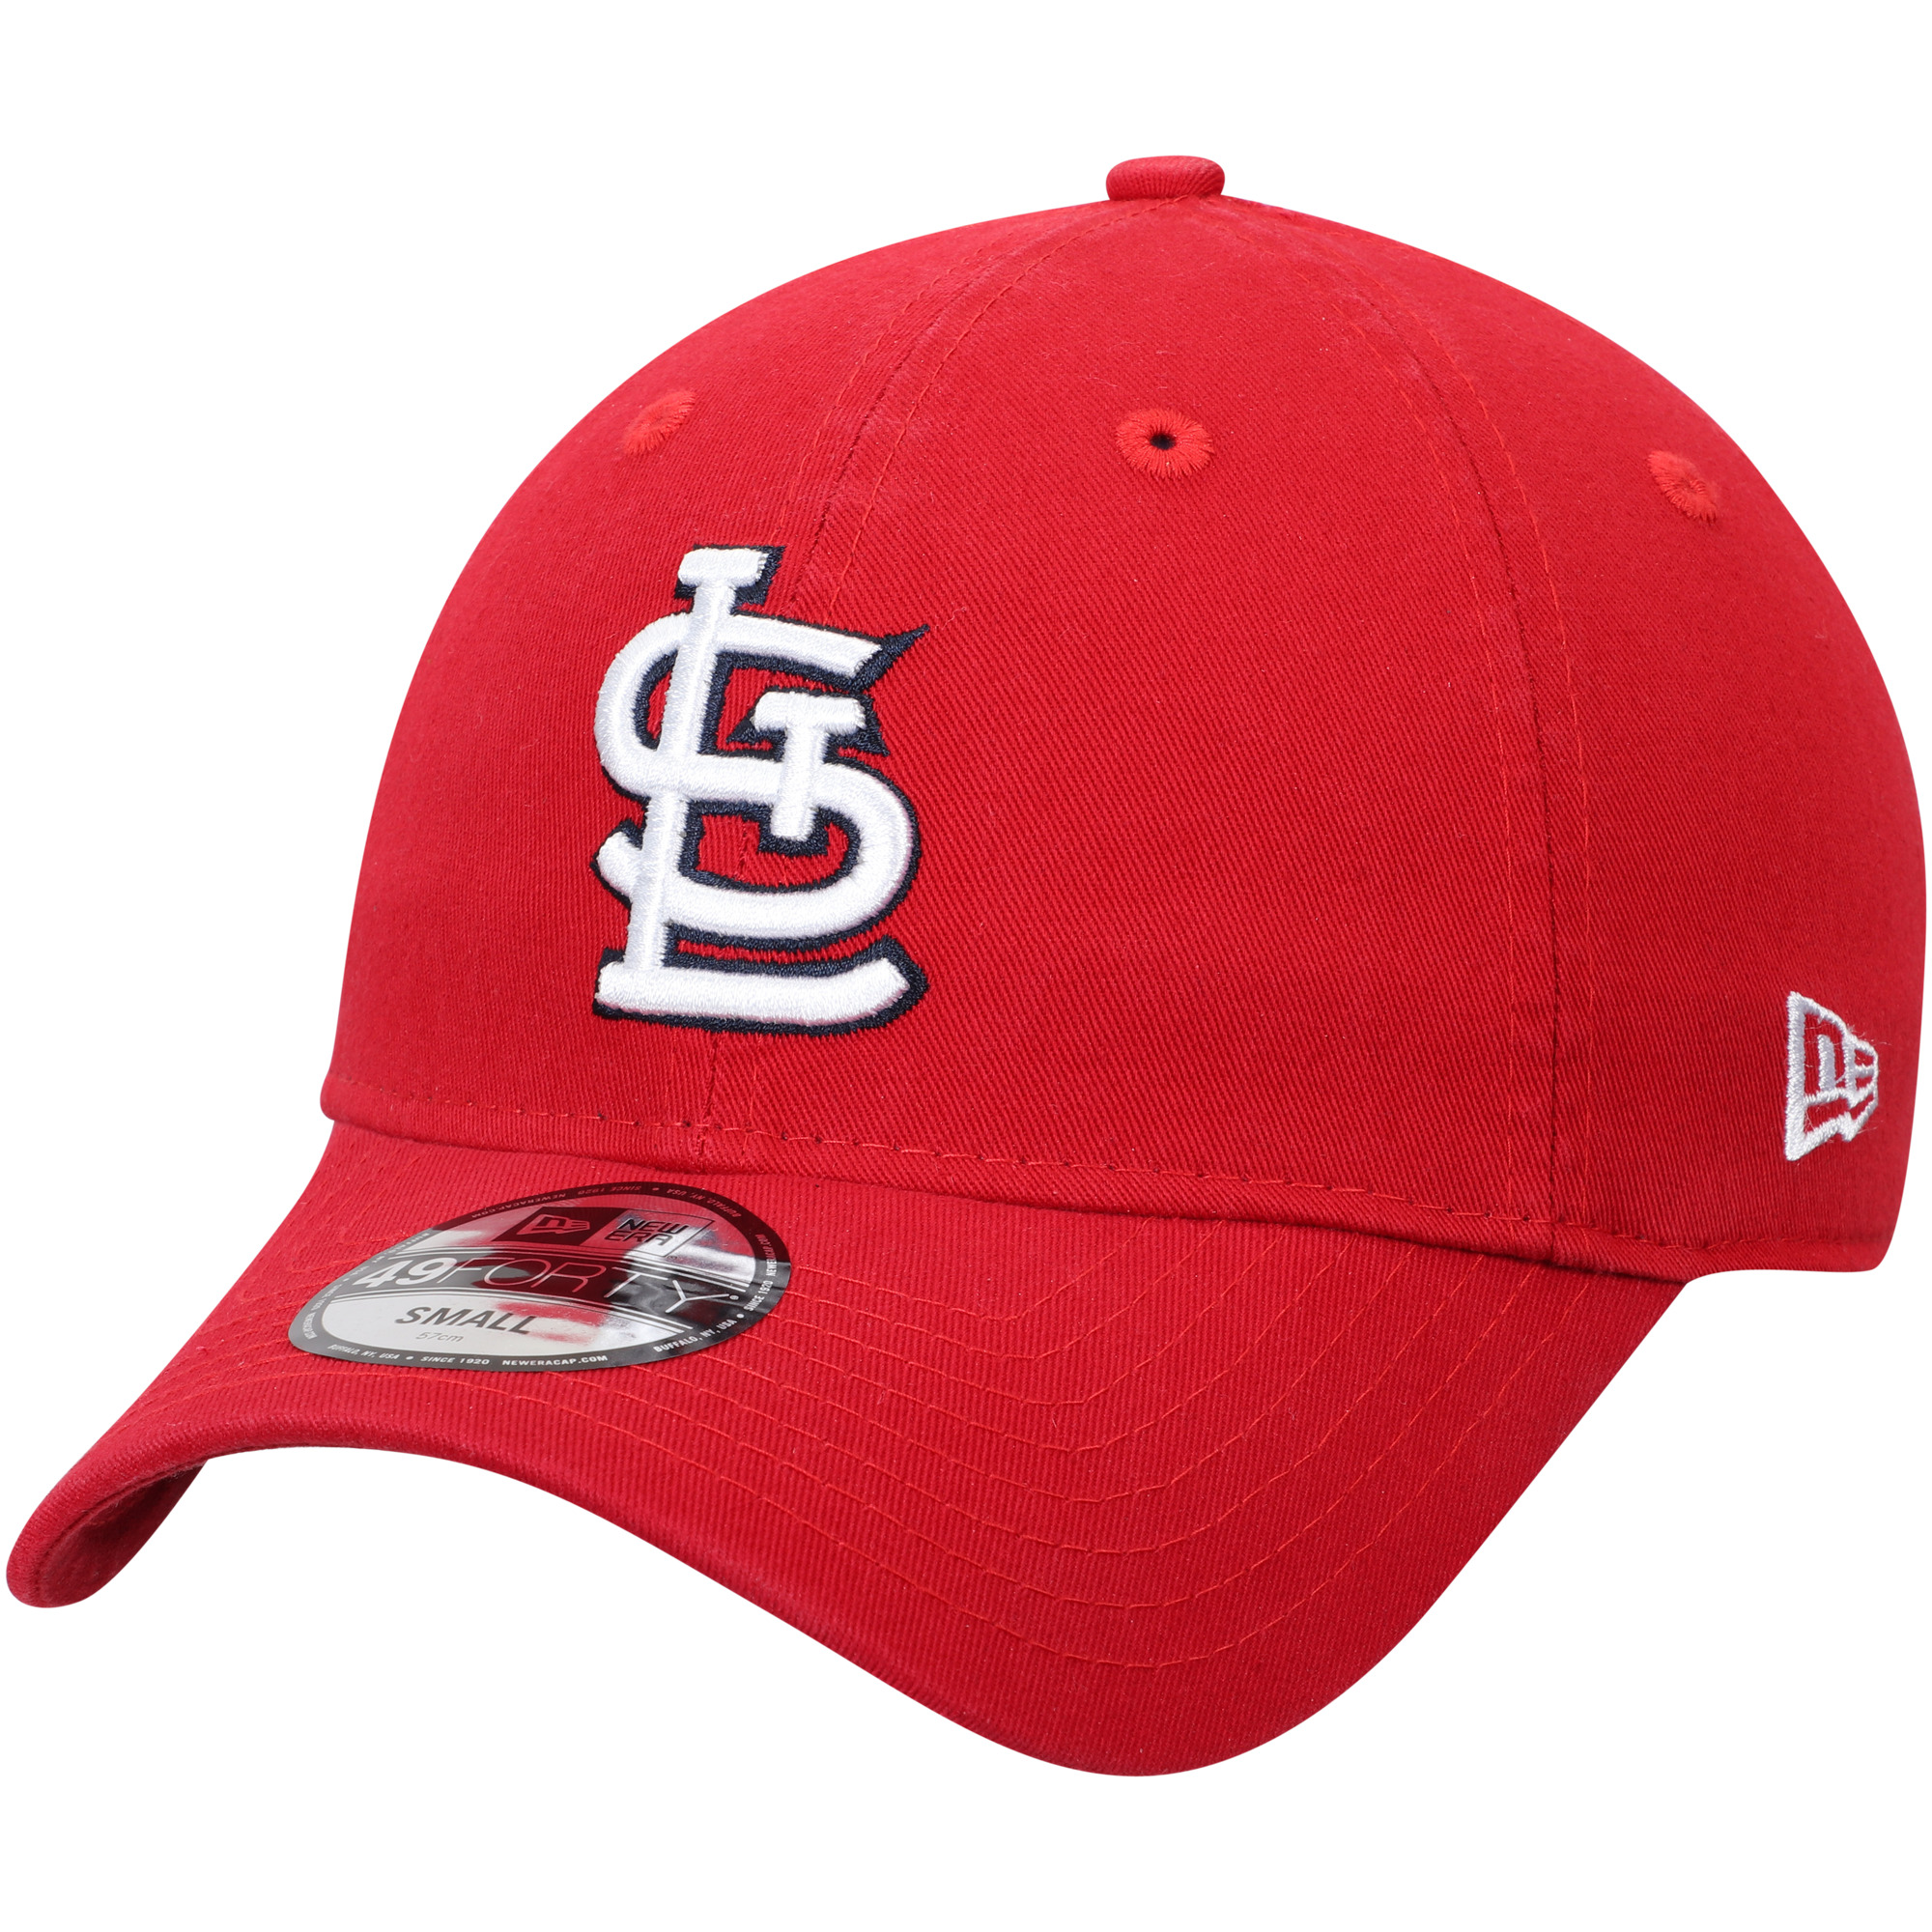 St. Louis Cardinals New Era Core Fit Replica 49FORTY Fitted Hat - Red